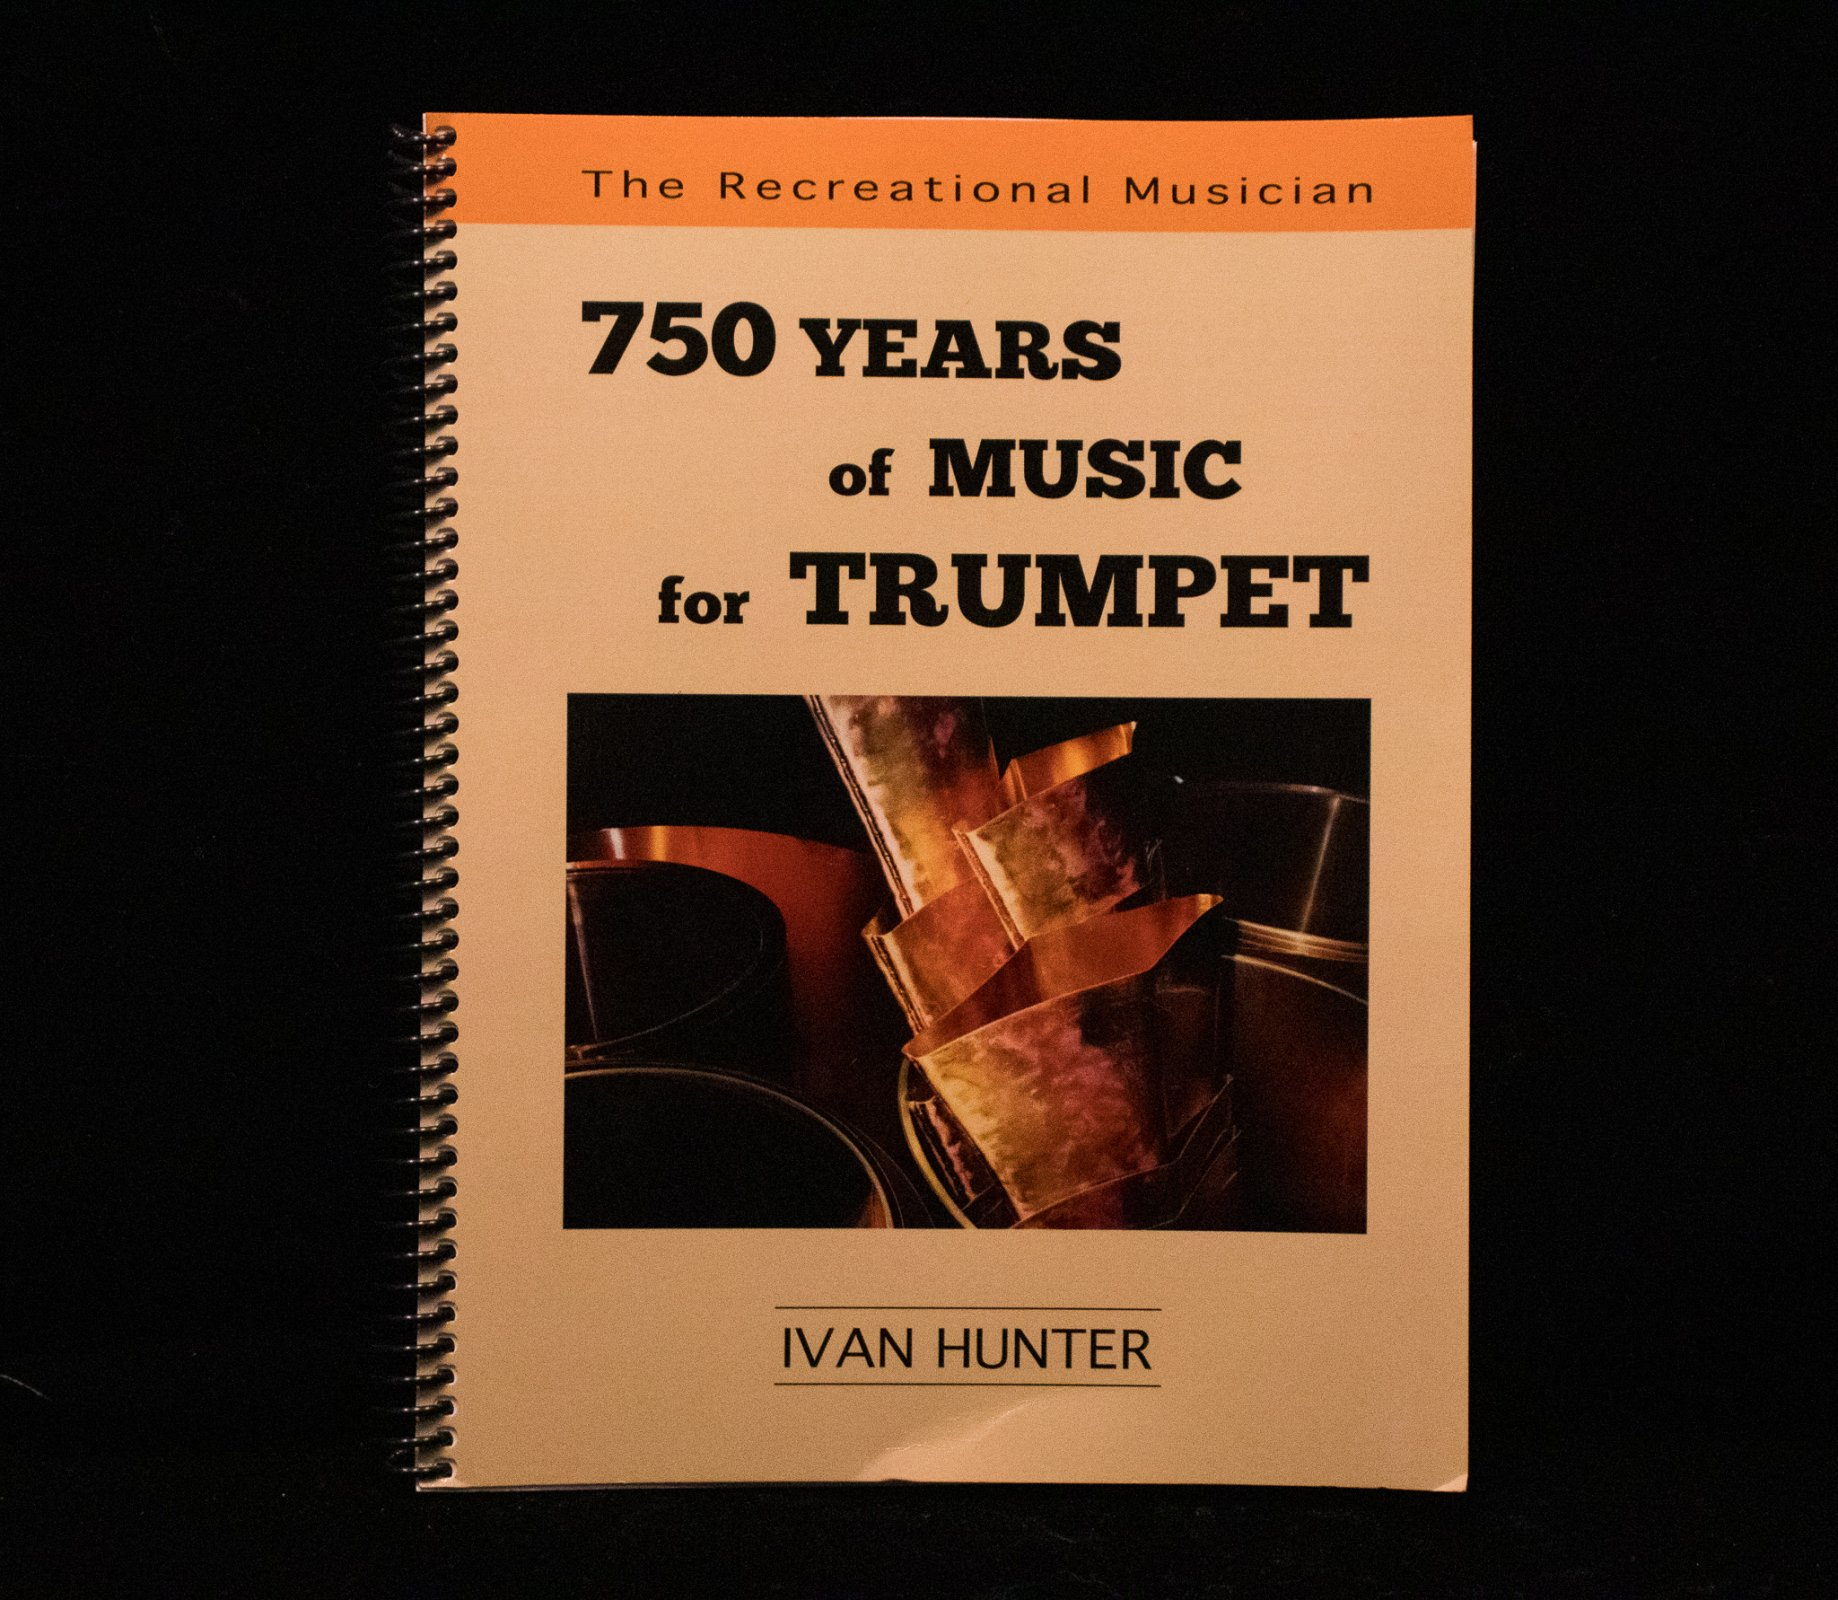 750 Years of Music for Trumpet by Ivan Hunter